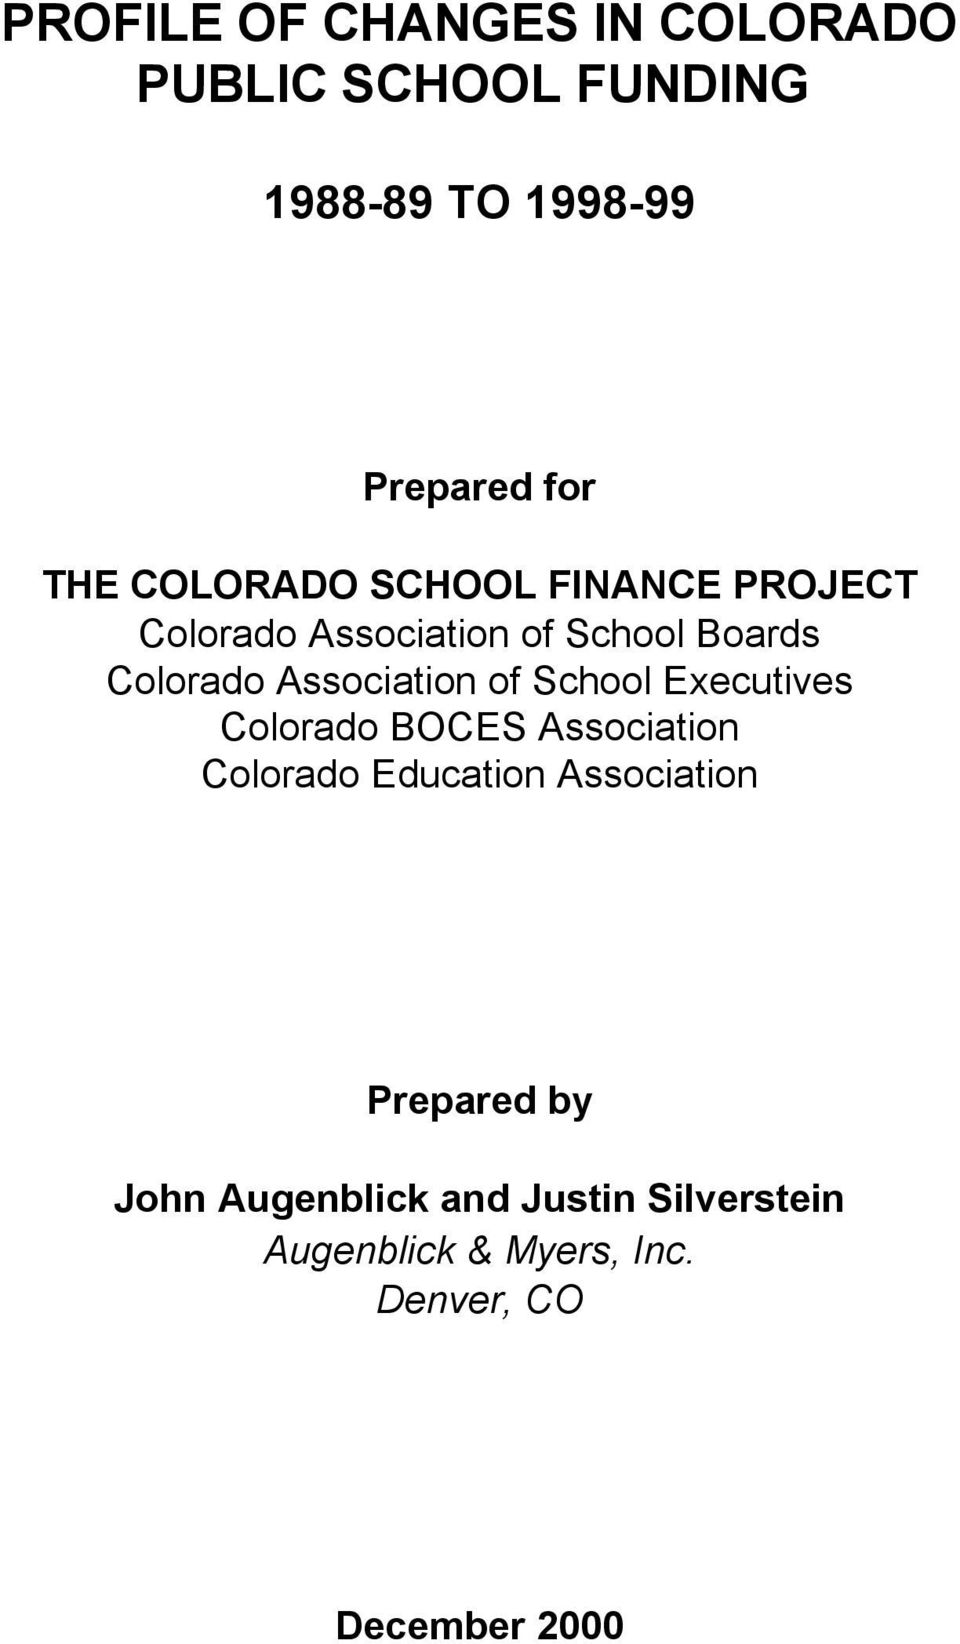 Association of School Executives Colorado BOCES Association Colorado Education